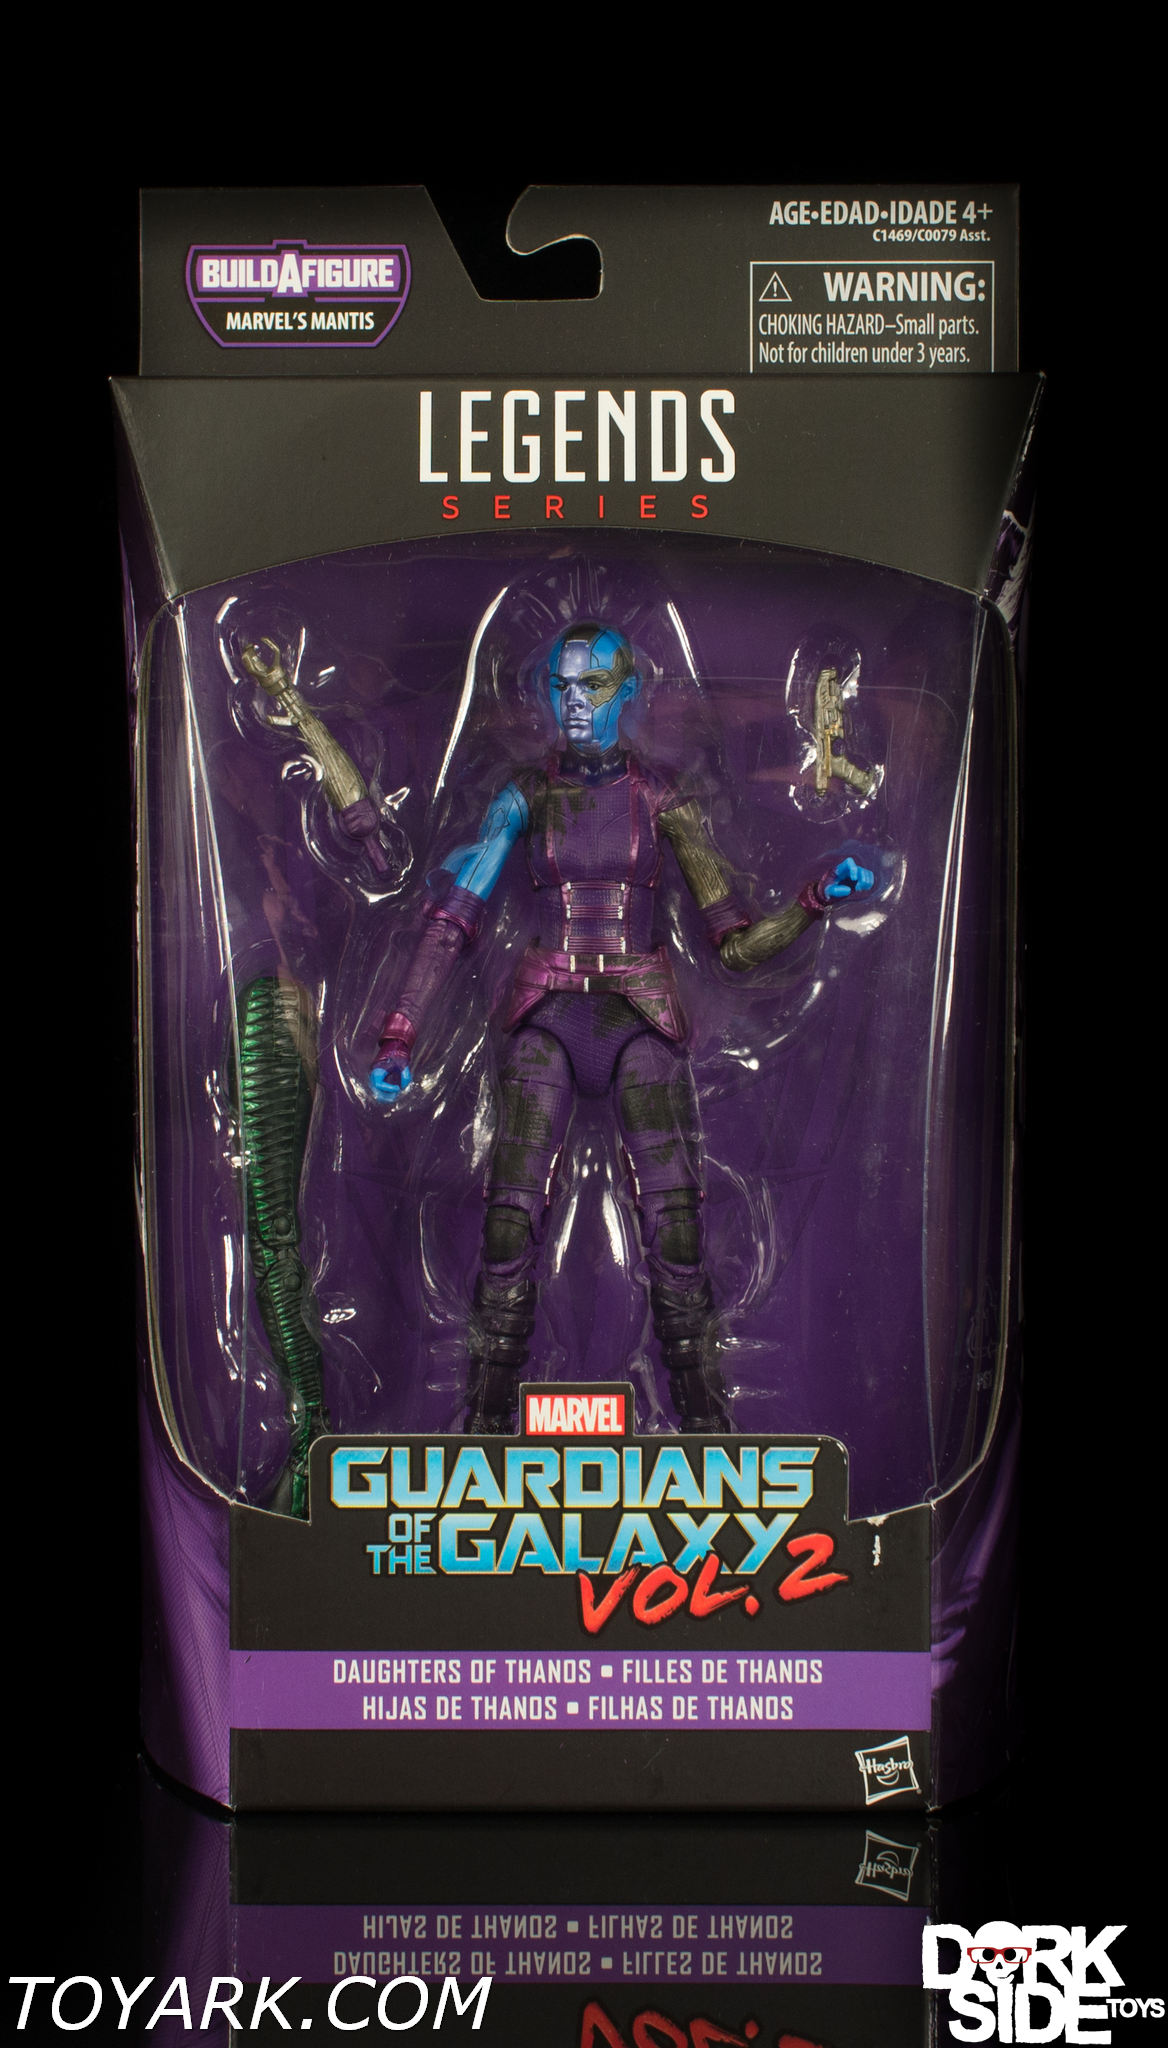 Nebula Guardians Of The Galaxy Marvel Legends furthermore Privatevalentineblonde Dangerous Still also Nicola Lake Sunset Motorcycle Ride as well Colombiana in addition Maxresdefault. on sony sub